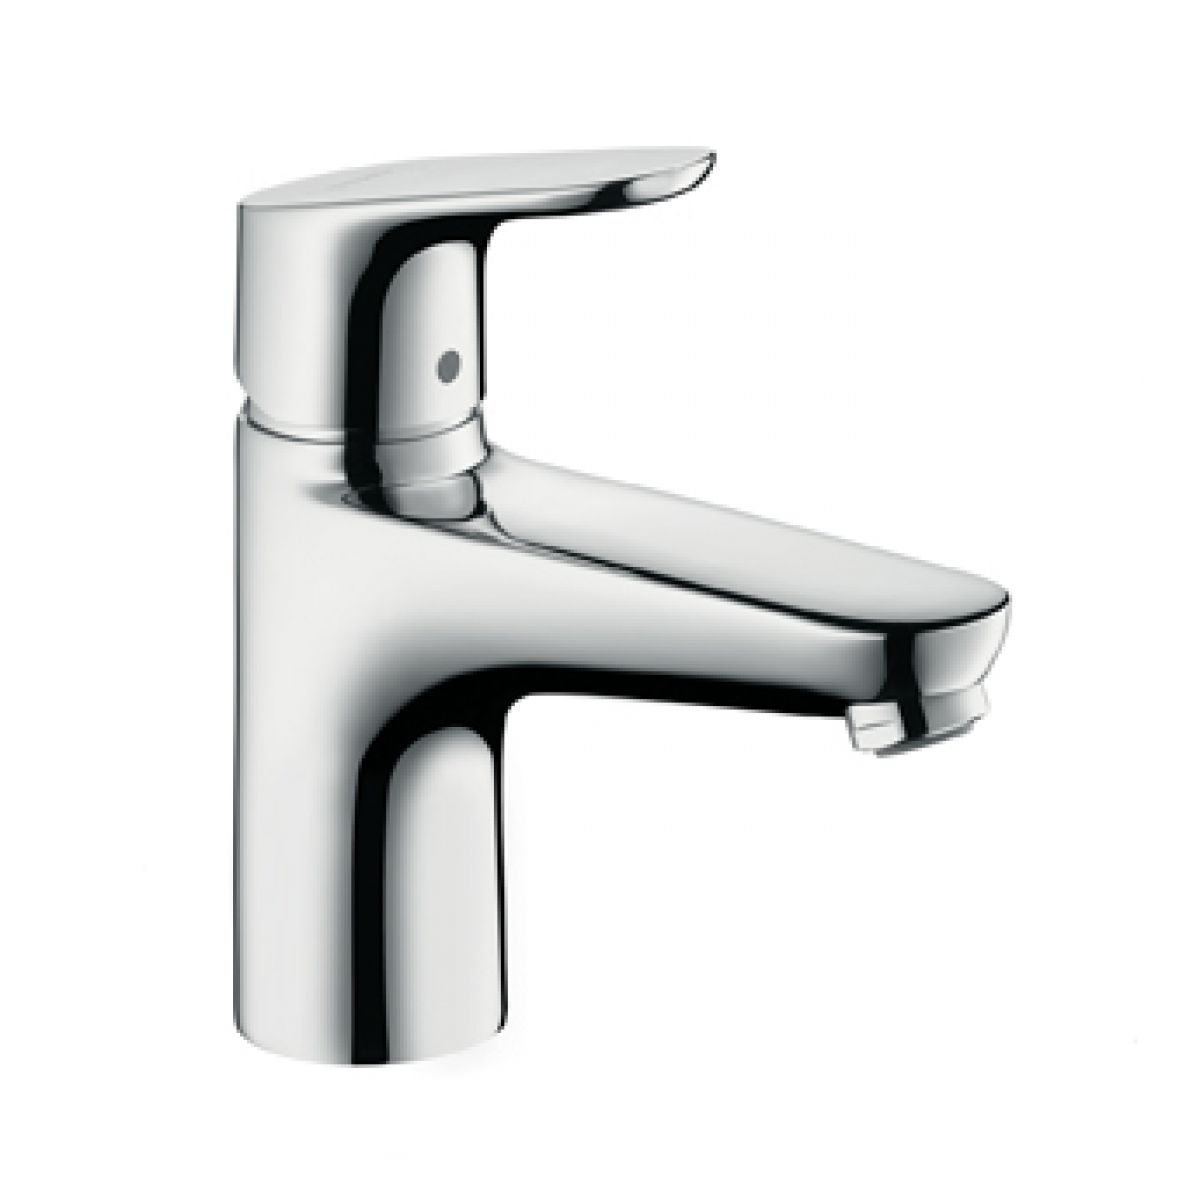 hansgrohe focus monotrou single lever bath mixer uk. Black Bedroom Furniture Sets. Home Design Ideas